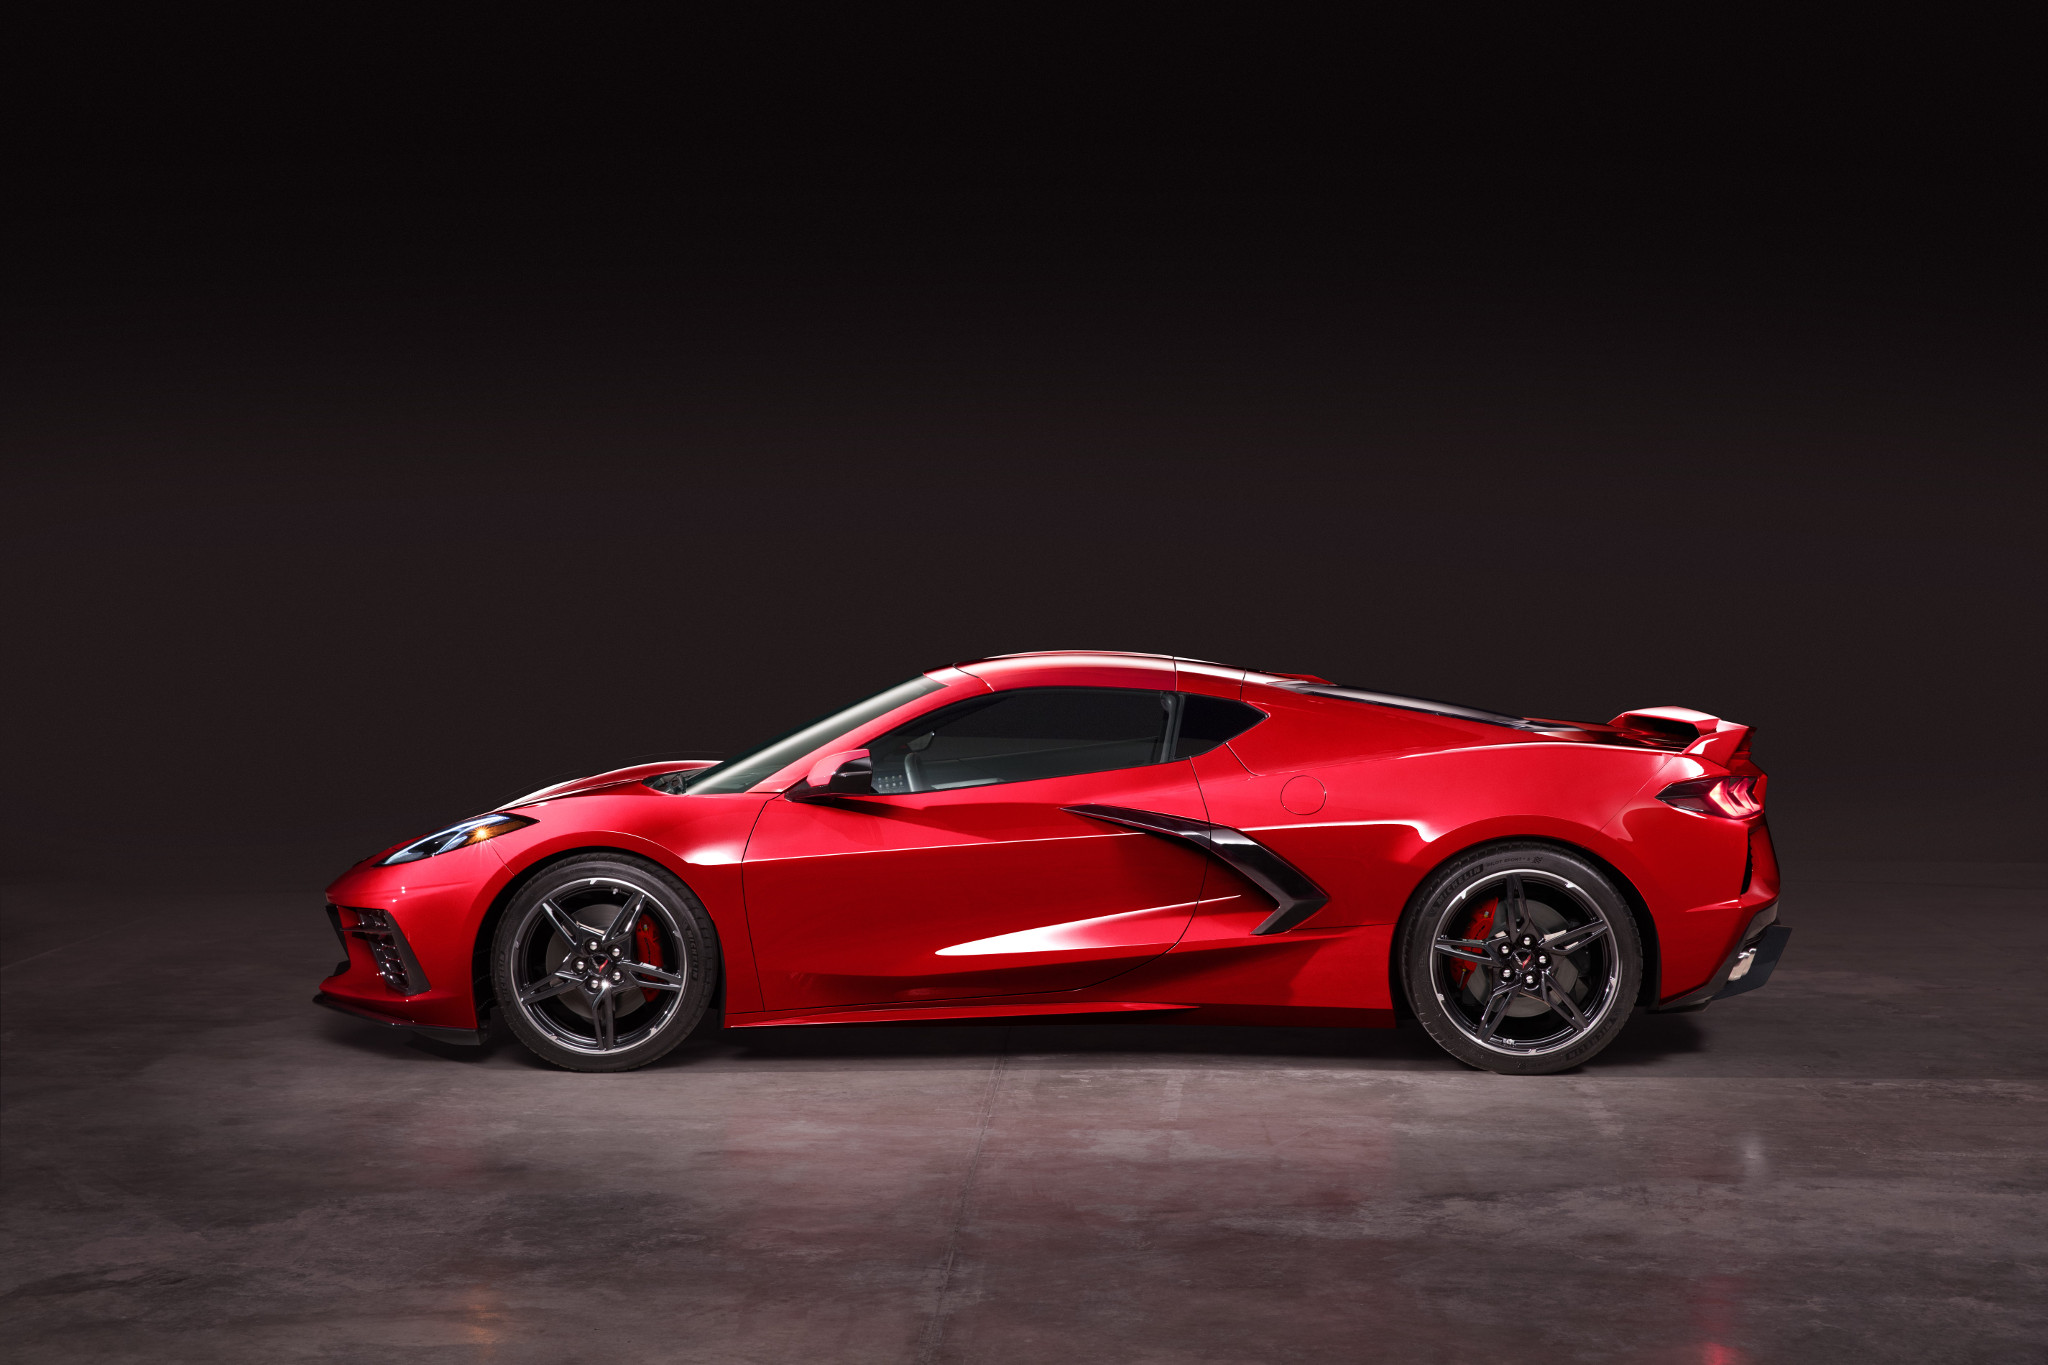 Here S What We Know About The 2020 Chevrolet Corvette News Cars Com